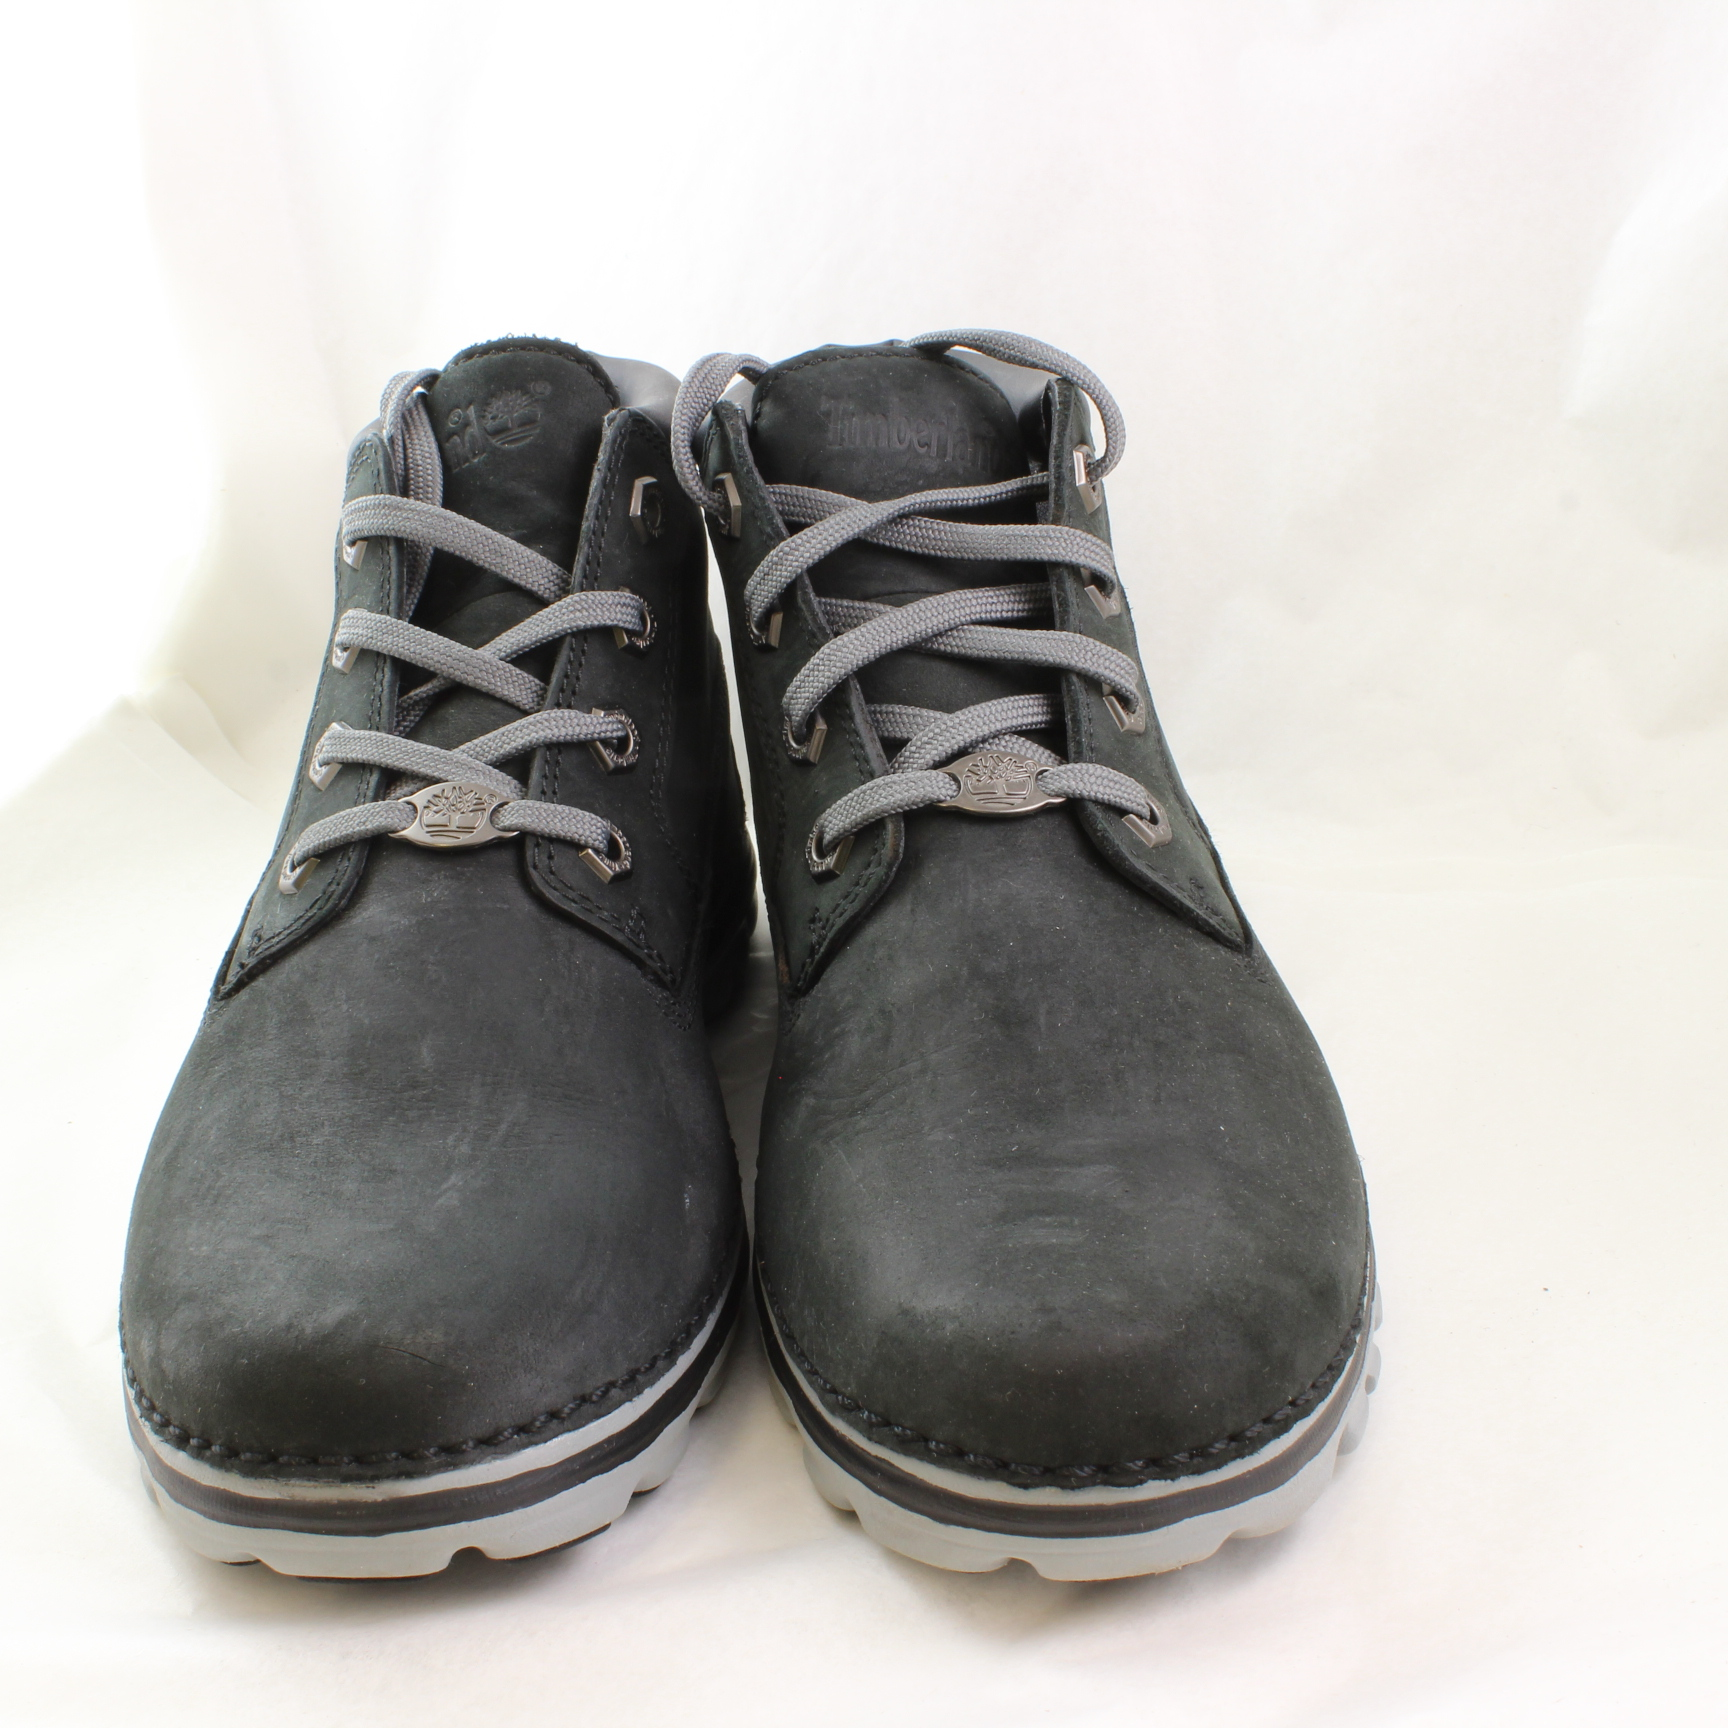 womens timberland black 100 leather ankle boots uk size 4